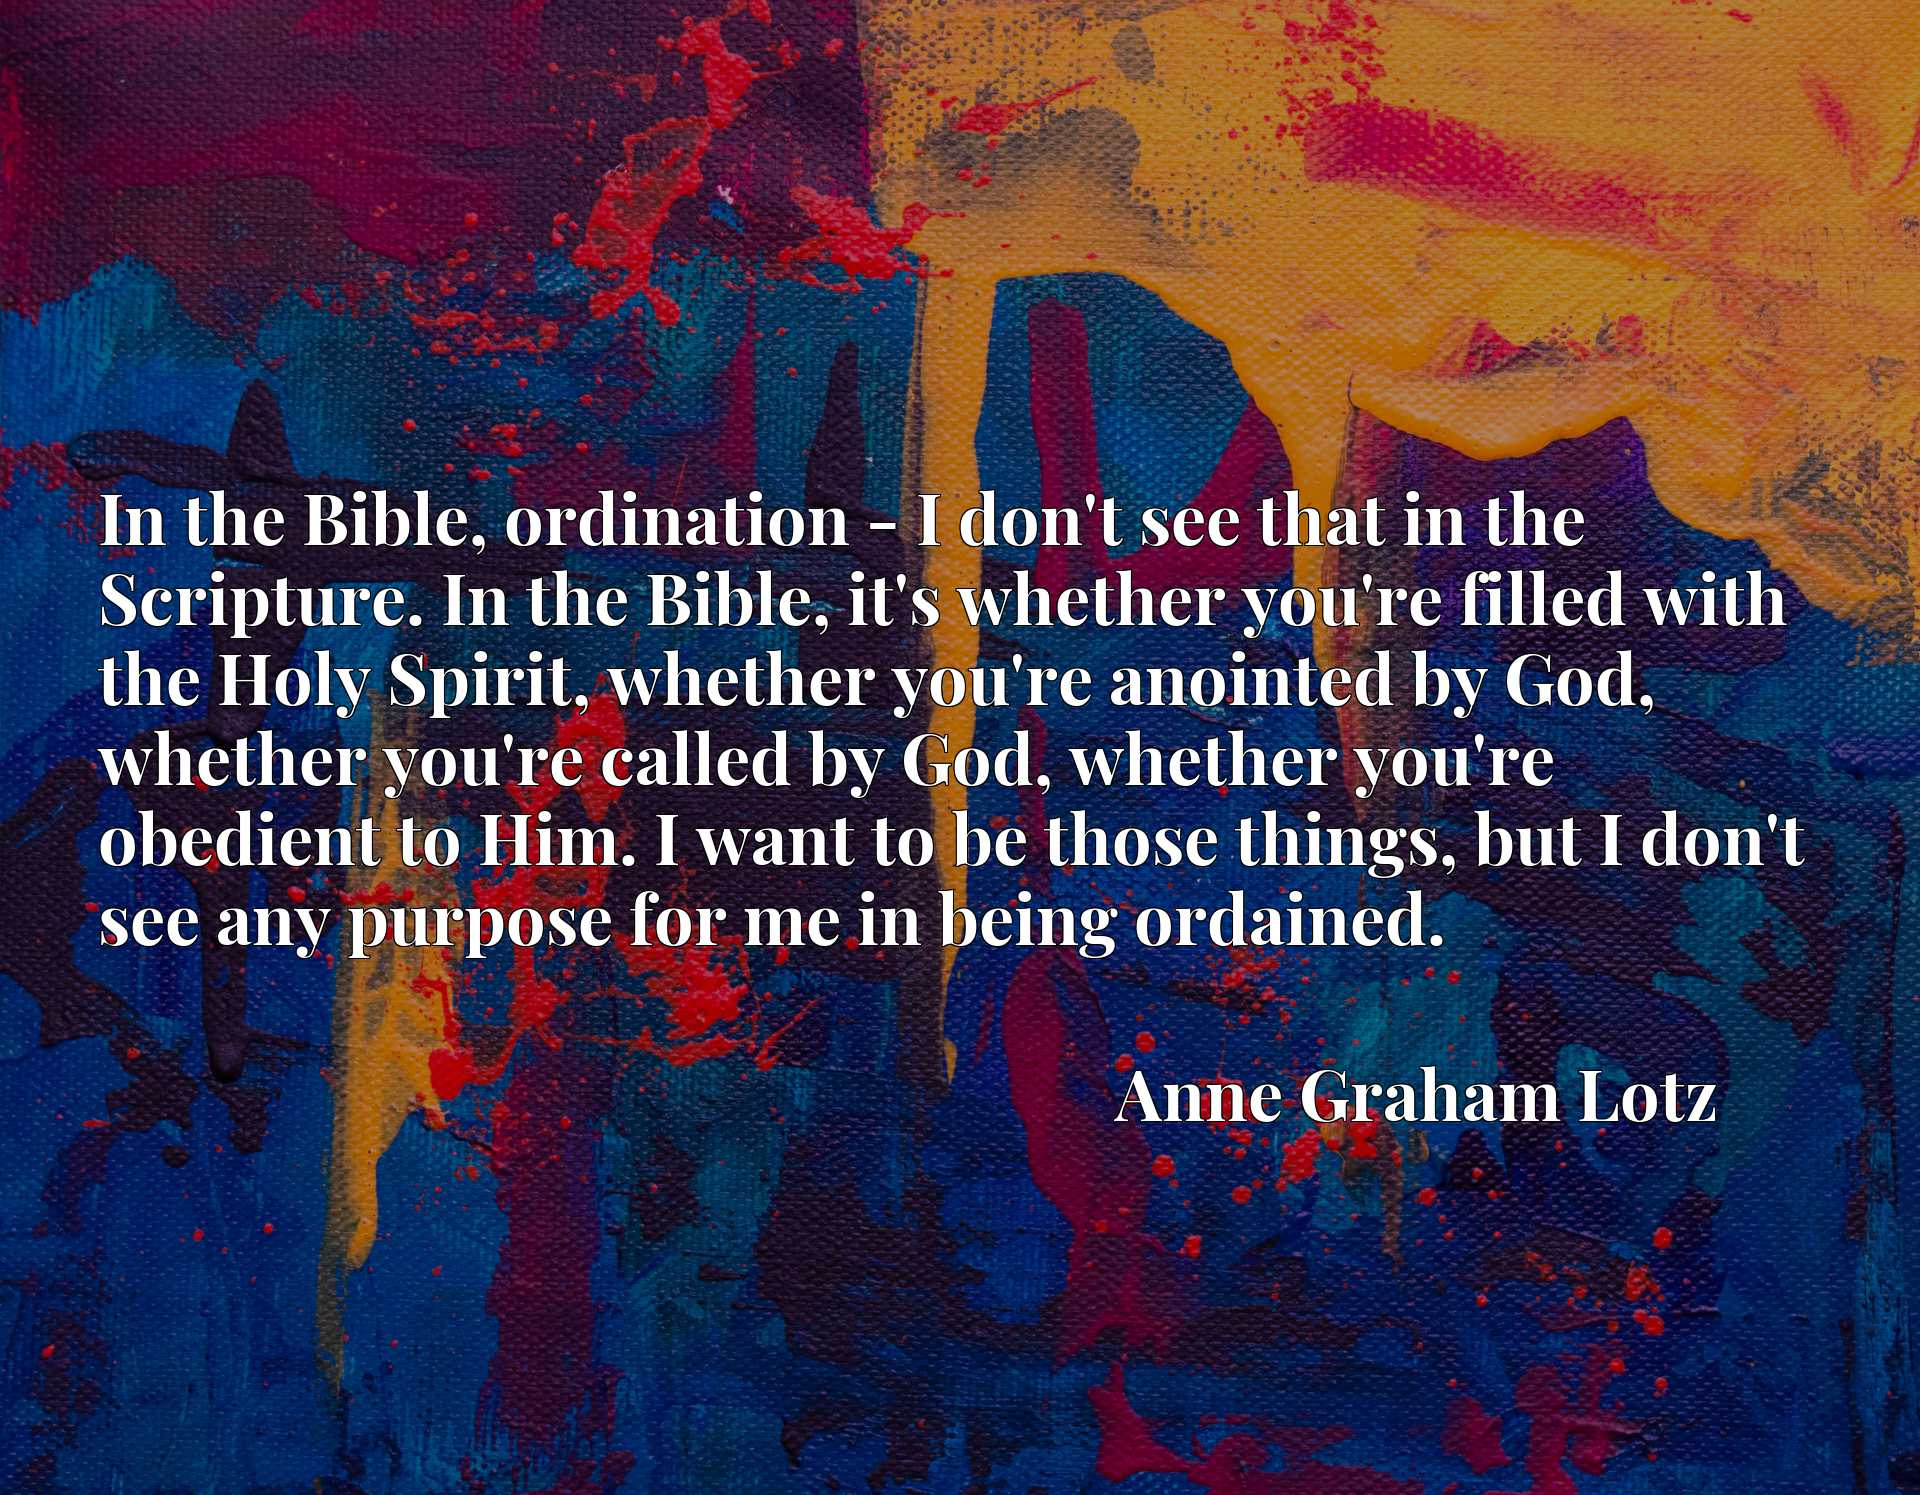 In the Bible, ordination - I don't see that in the Scripture. In the Bible, it's whether you're filled with the Holy Spirit, whether you're anointed by God, whether you're called by God, whether you're obedient to Him. I want to be those things, but I don't see any purpose for me in being ordained.